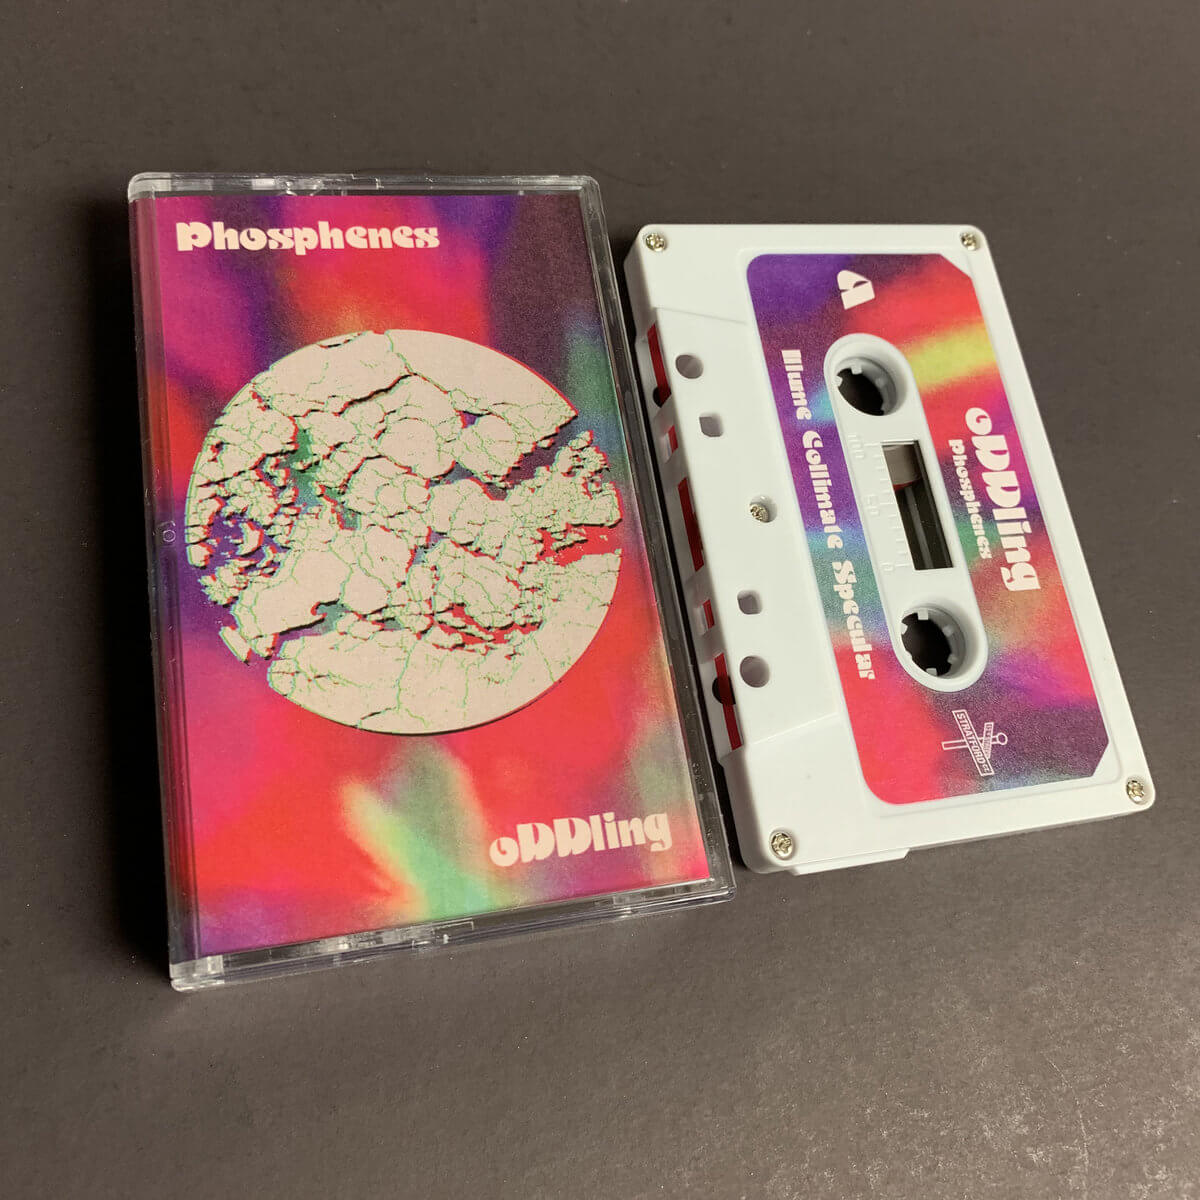 oDDling - Phosphenes (Limited Edition Cassette) by oDDling (Limited Edition Cassette) 1